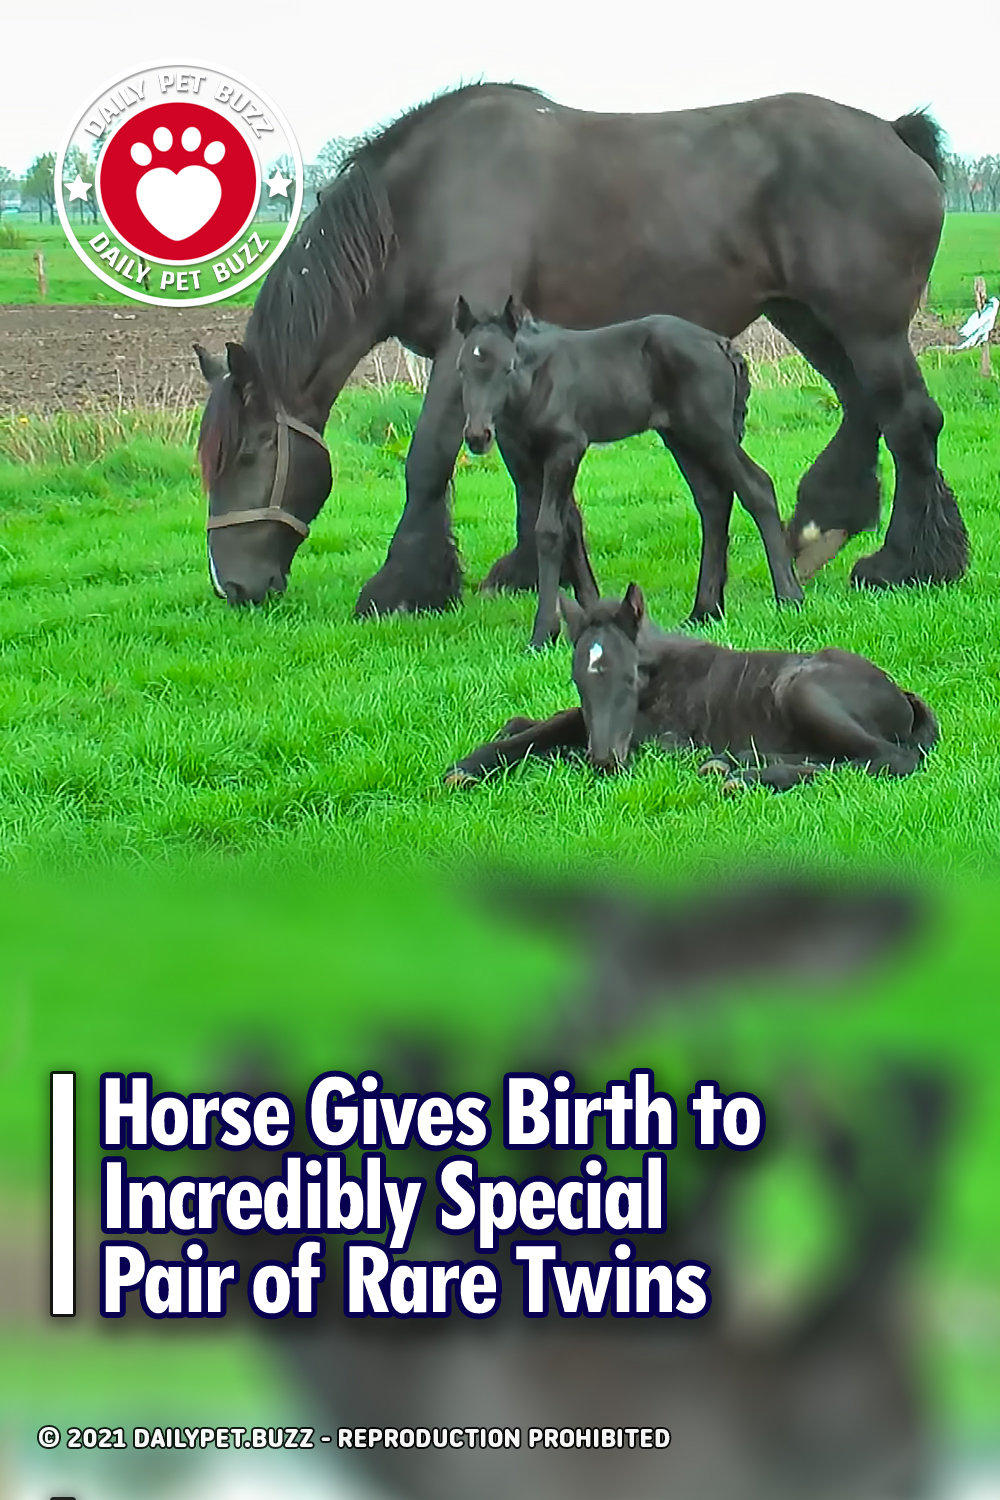 Horse Gives Birth to Incredibly Special Pair of Rare Twins